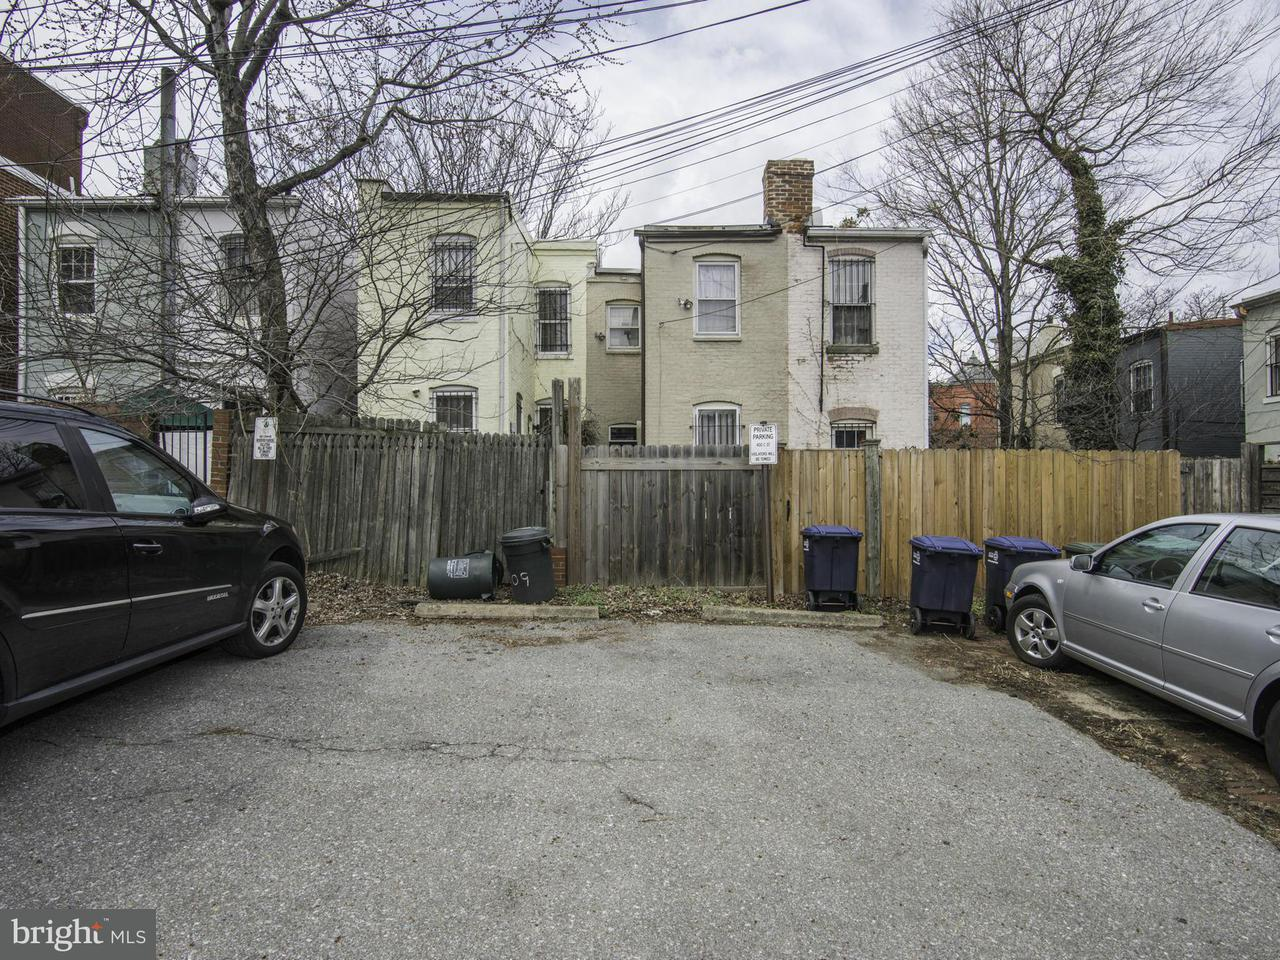 Additional photo for property listing at 400 C St Ne 400 C St Ne Washington, 哥倫比亞特區 20002 美國